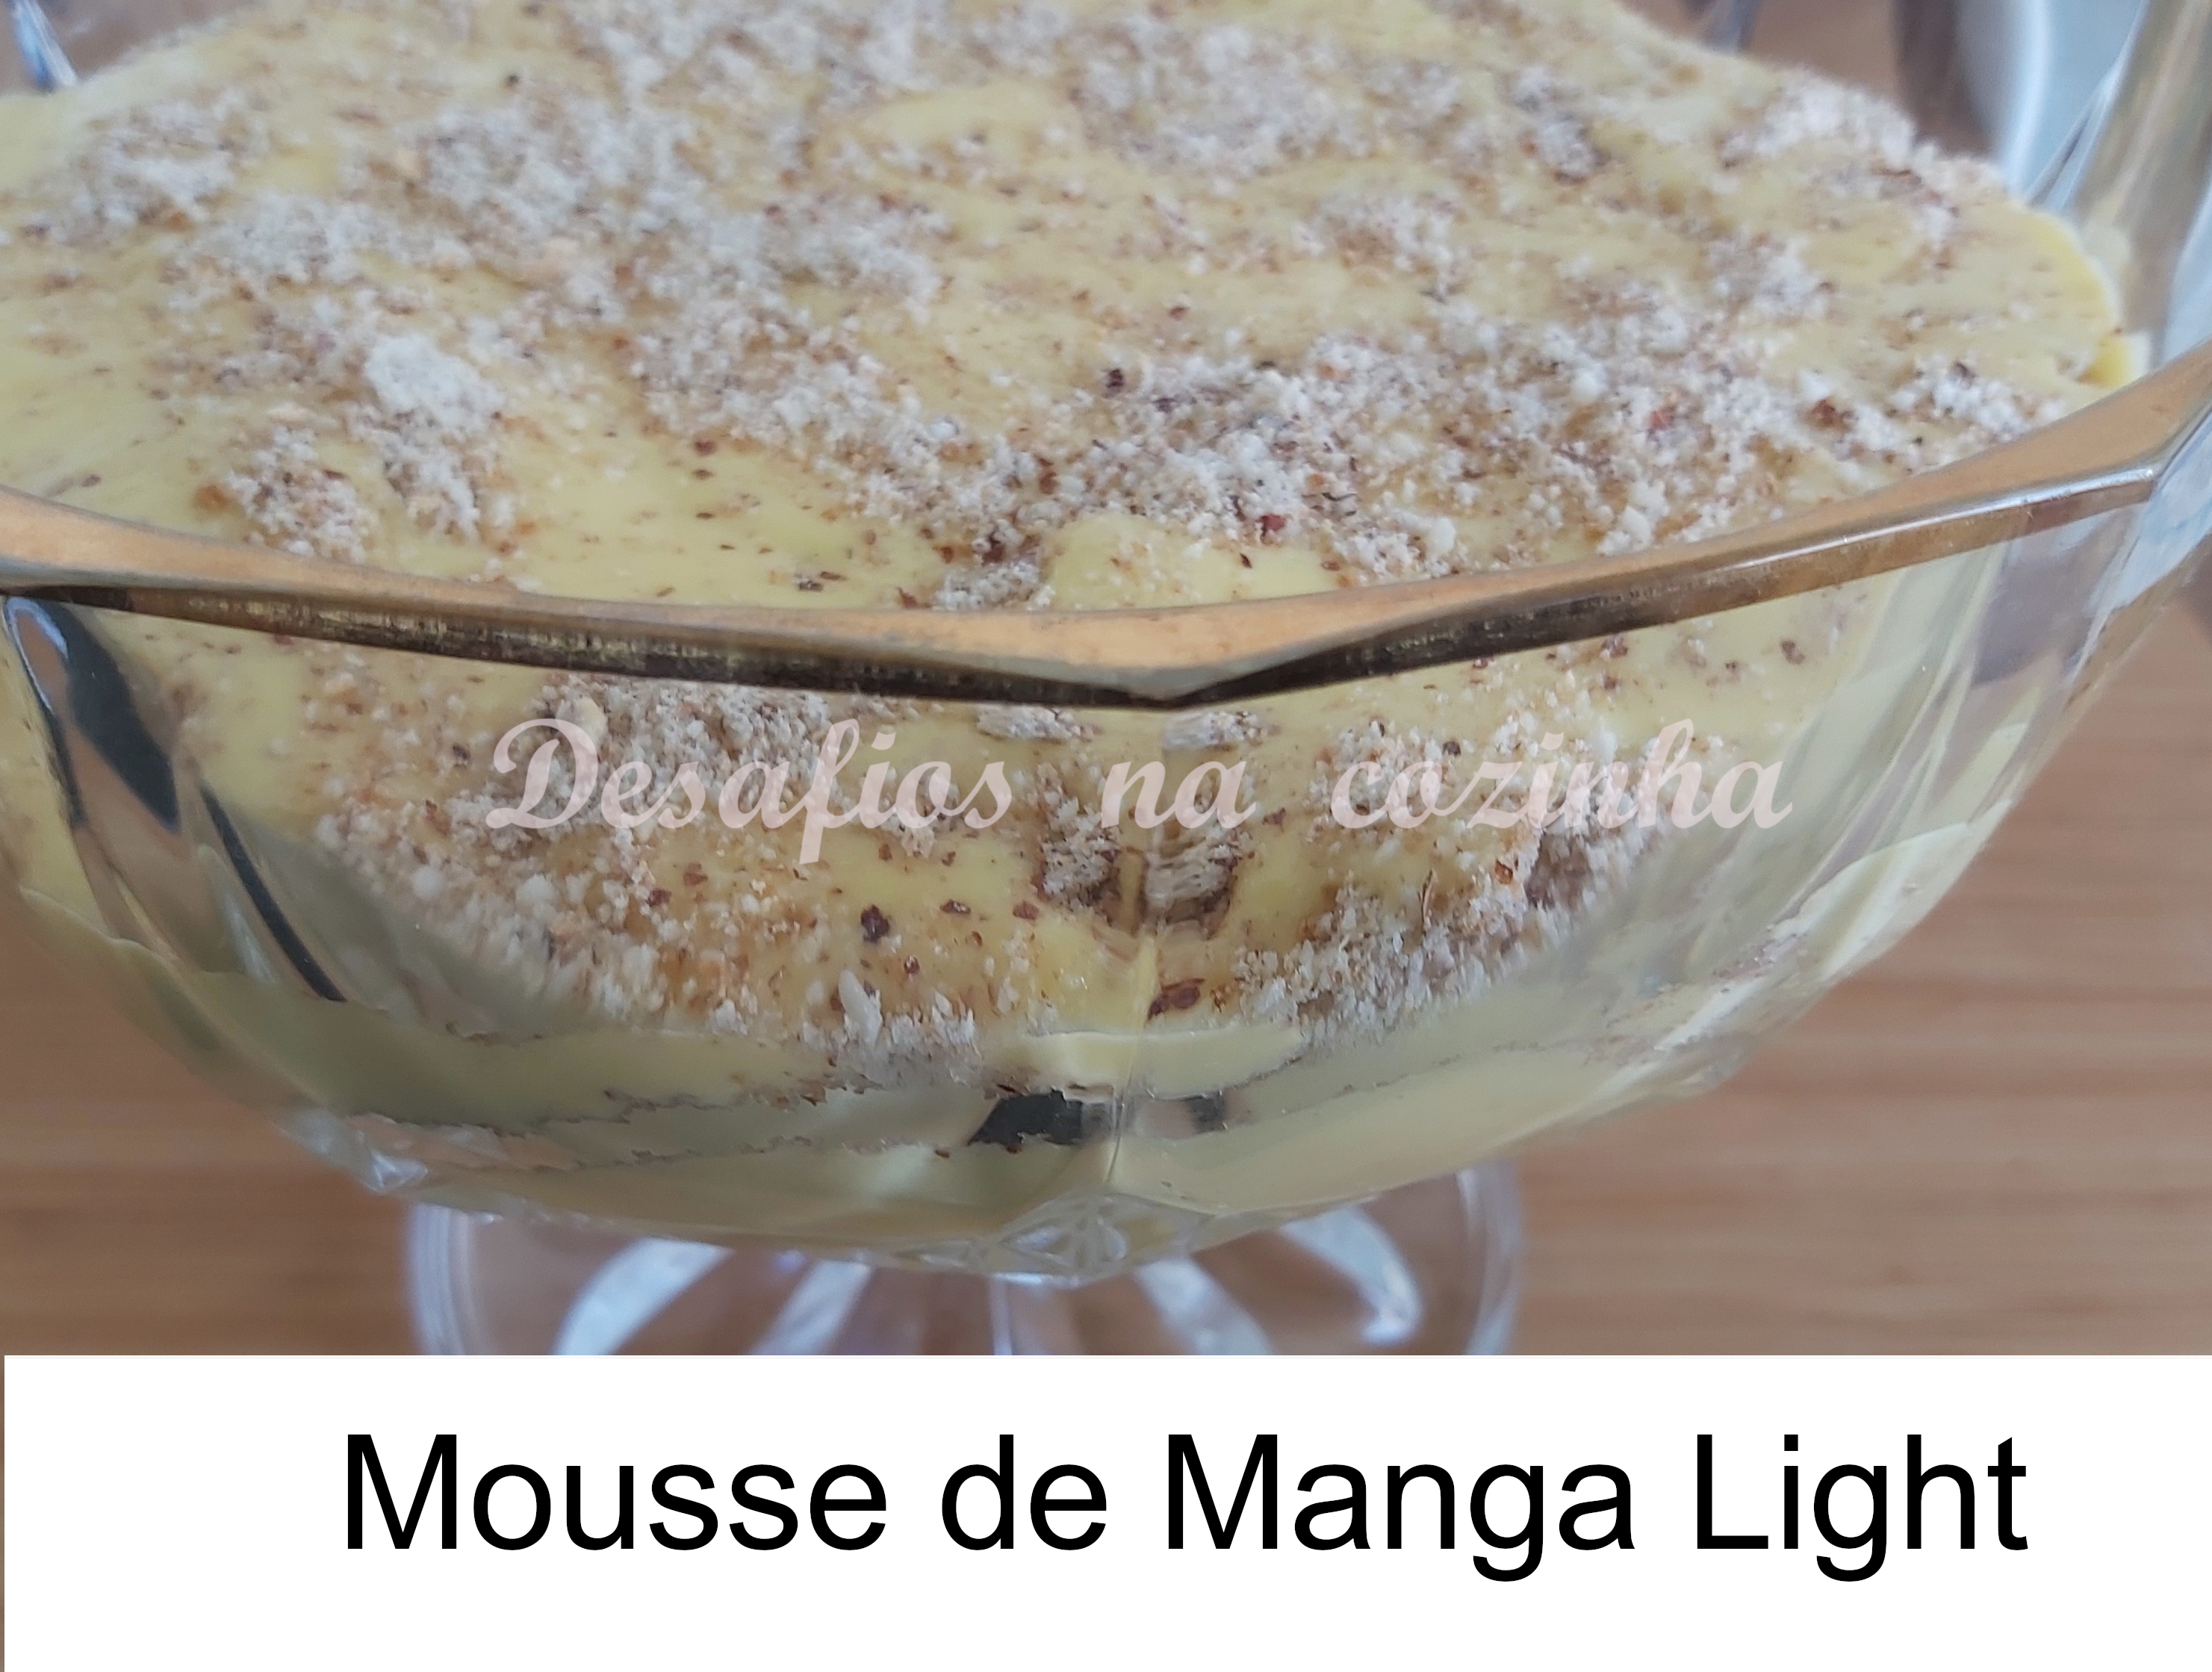 Mousse de manga light menu